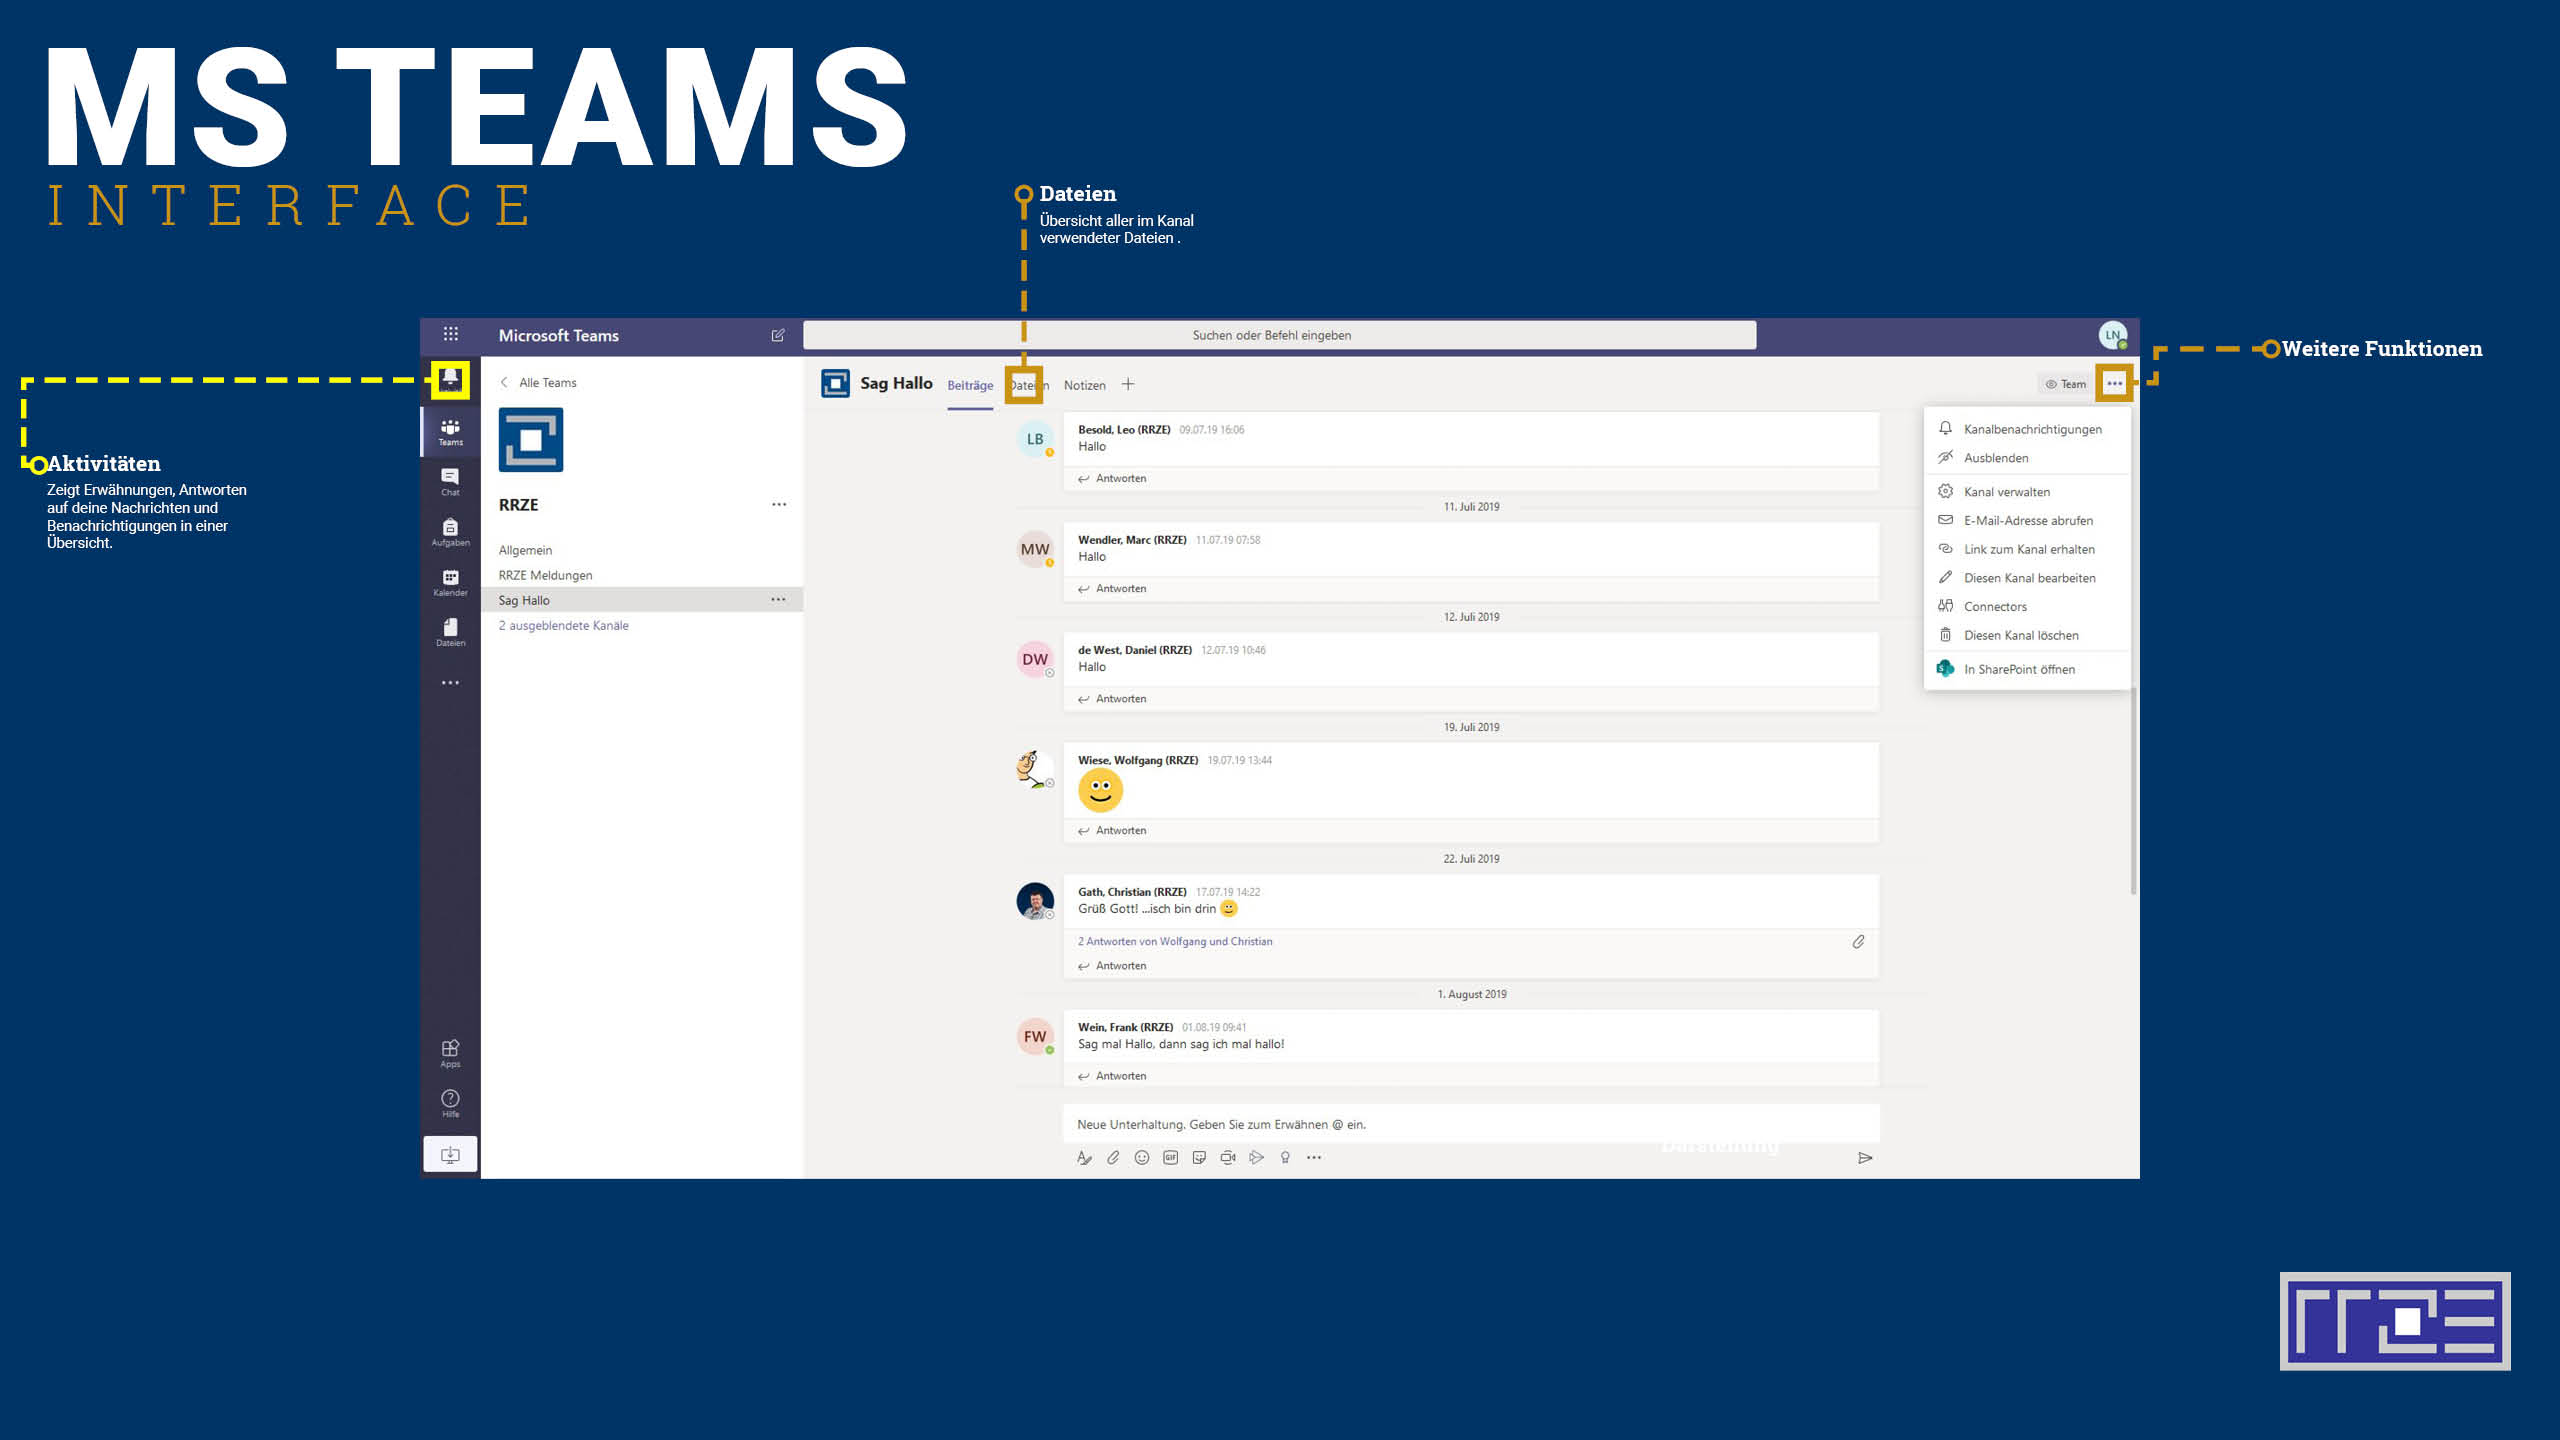 MS Teams Interface